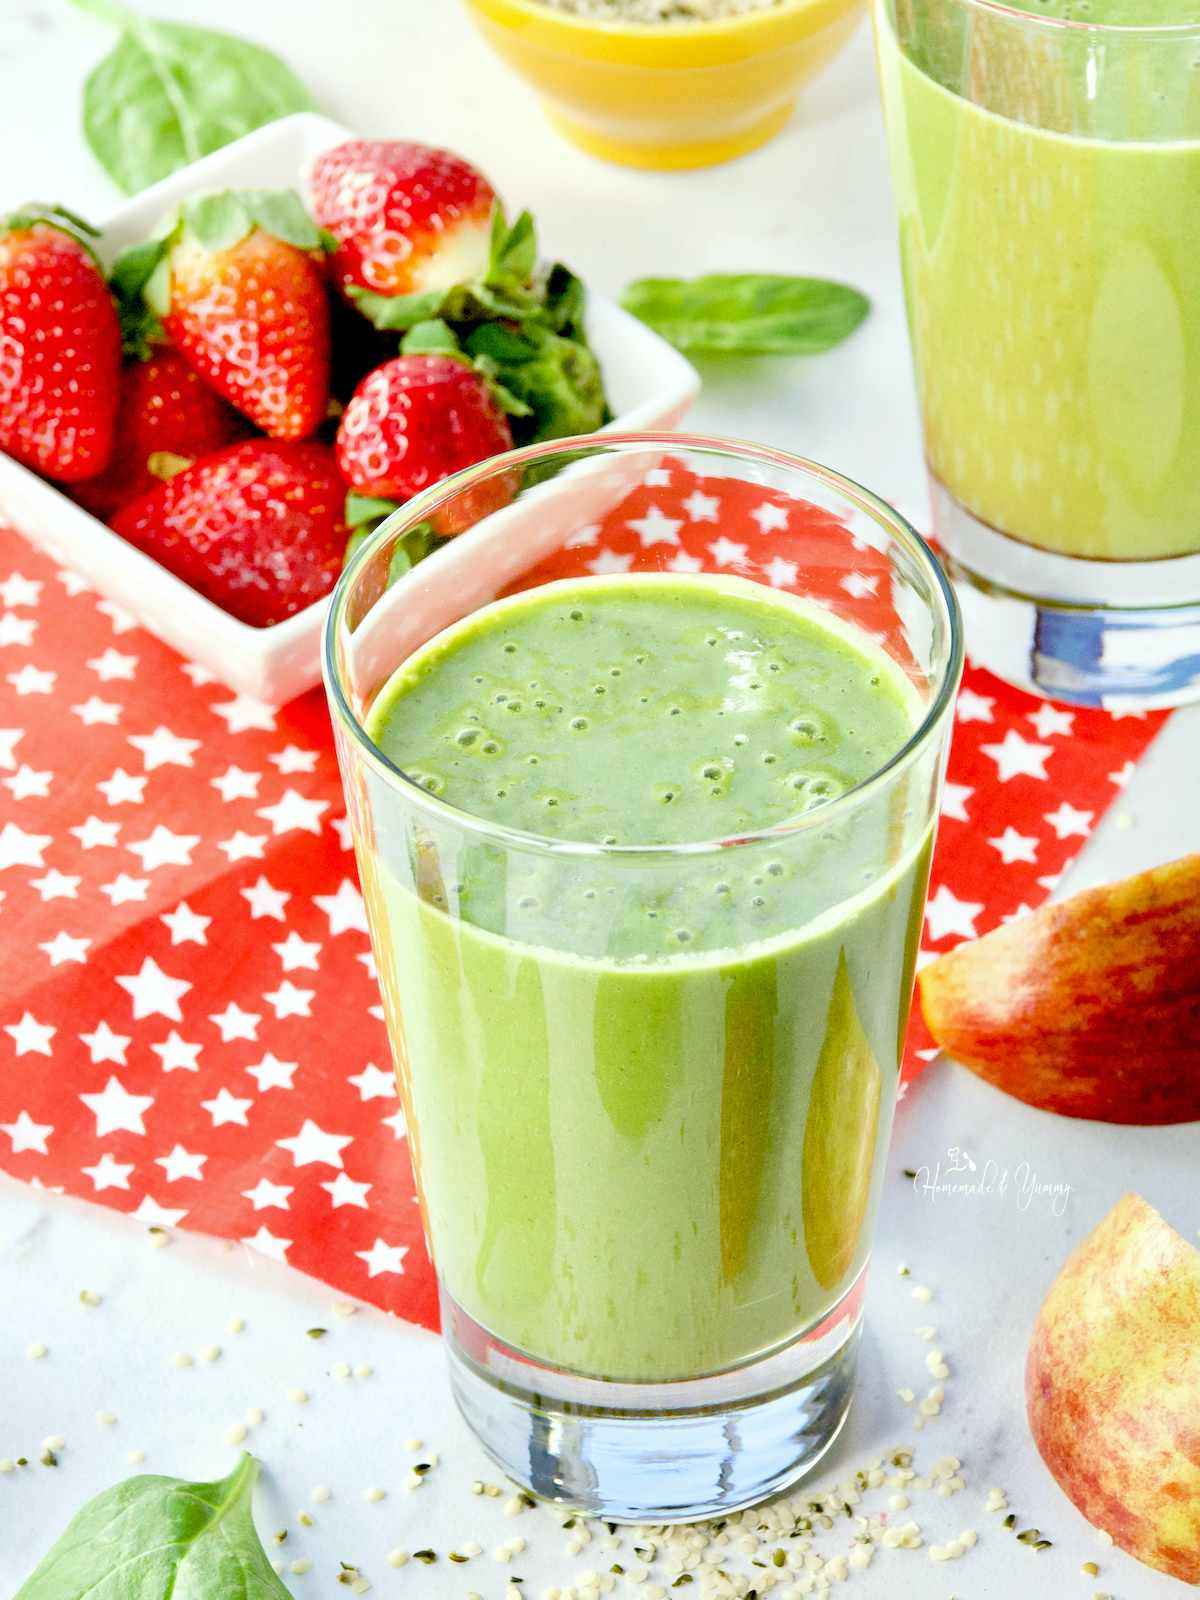 Green Hemp Smoothie in a glass, strawberries and apple slices in the background.